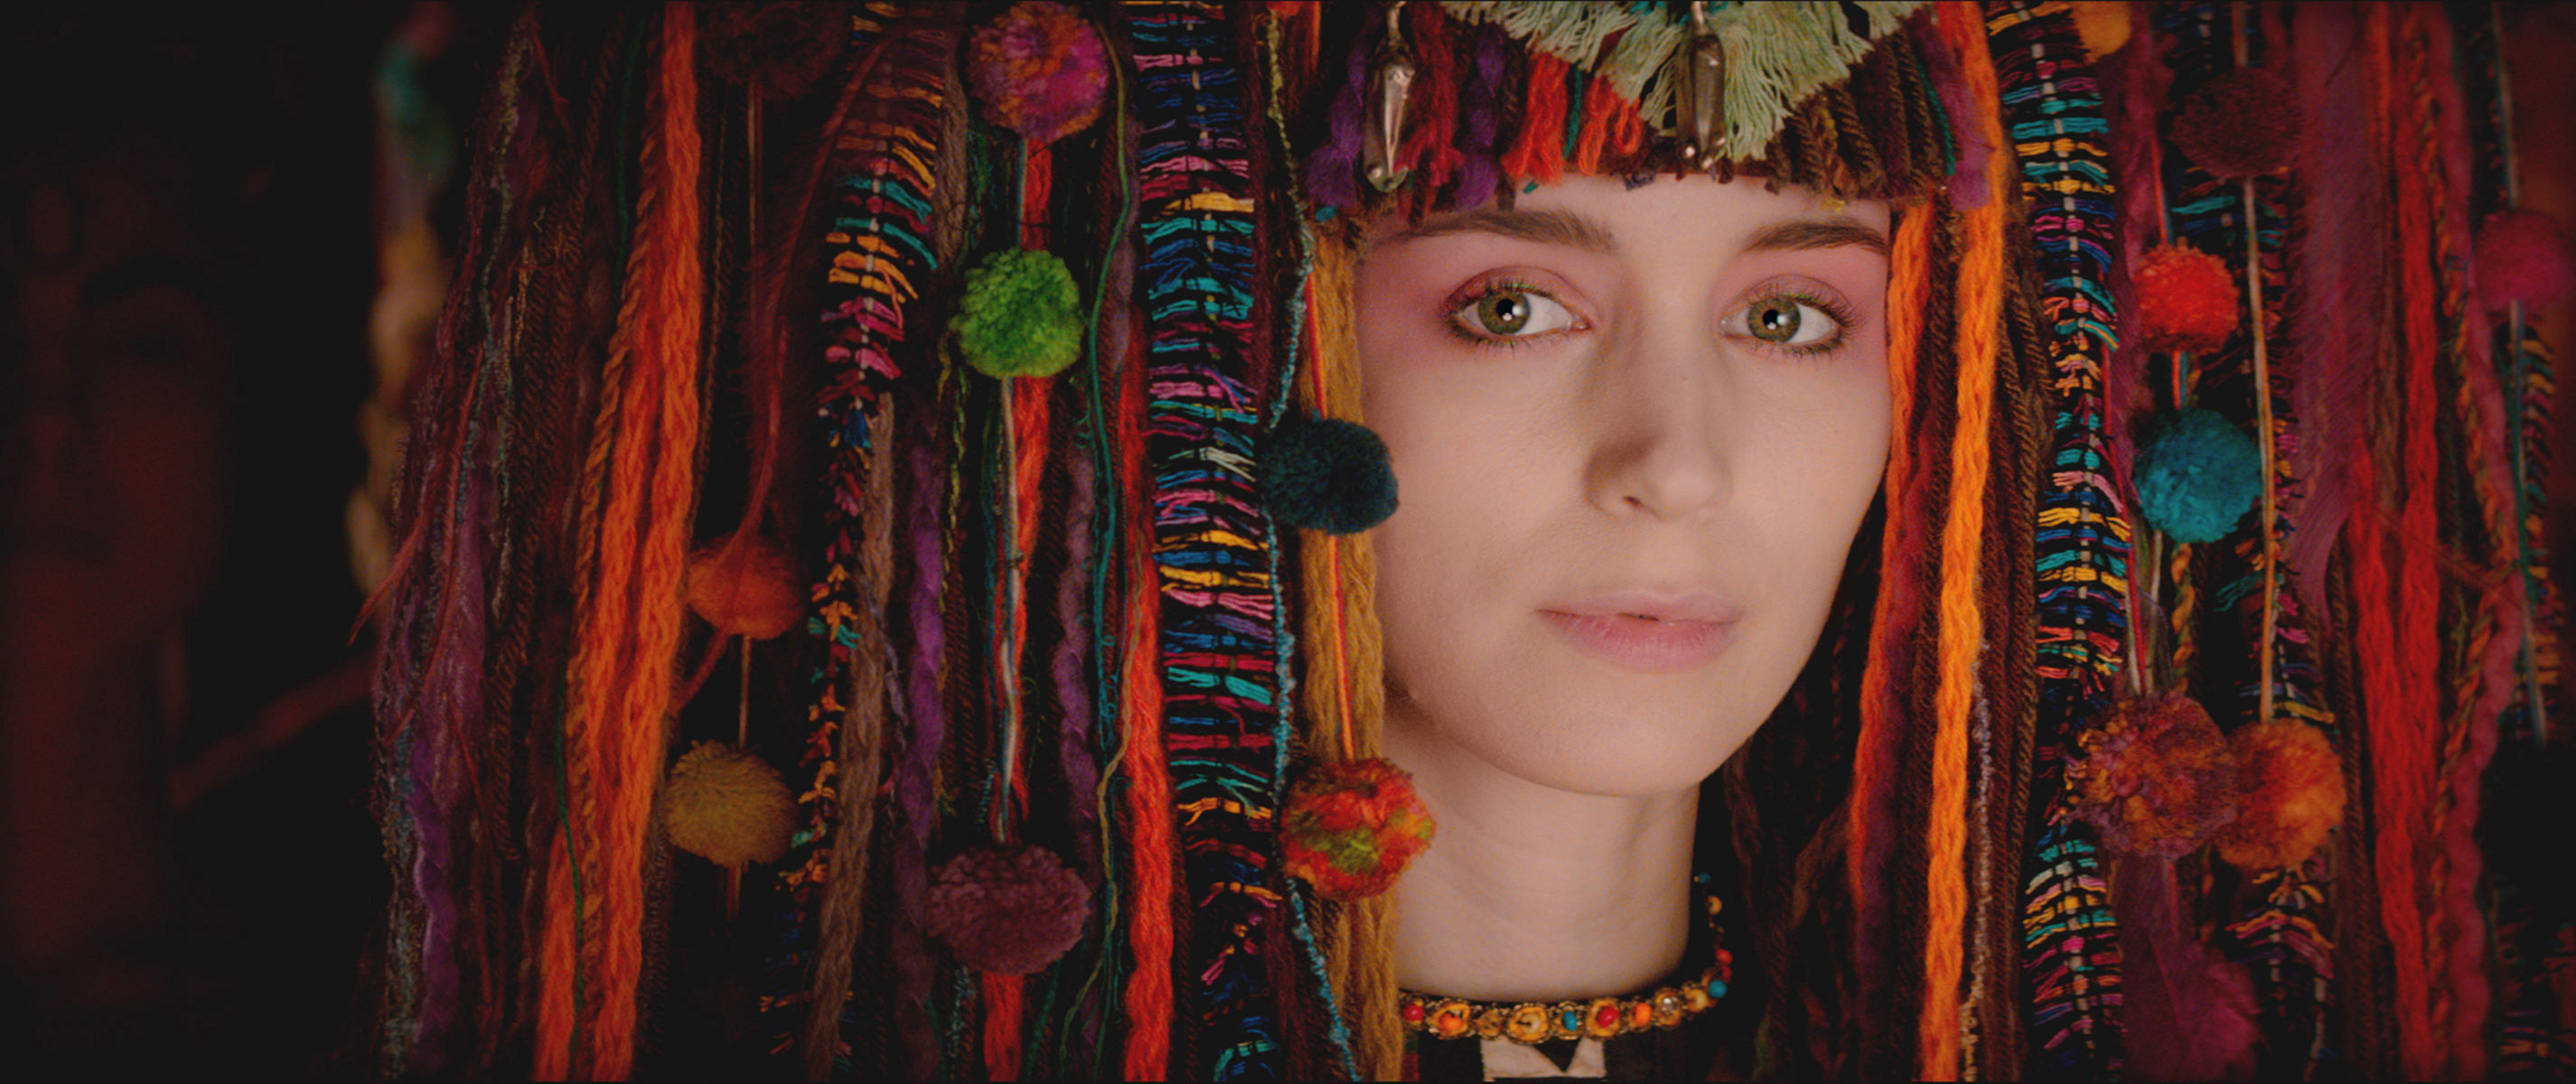 Rooney Mara as Tiger Lily wearing a traditional headdress.